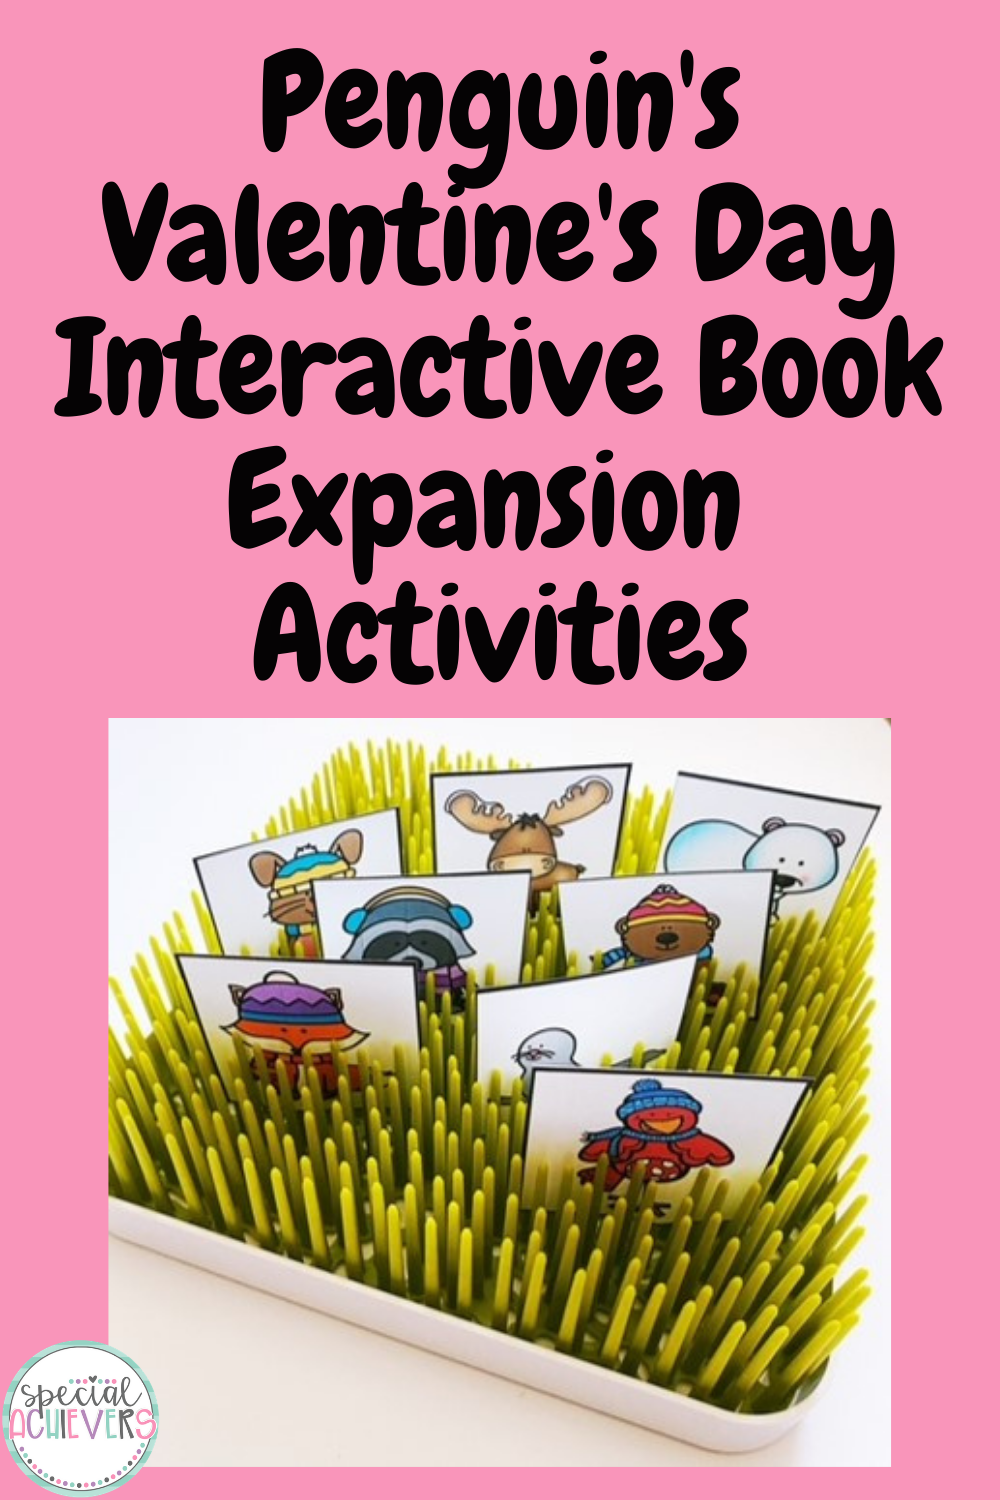 """The text """"Penguin's Valentine's Day Interactive Book Expansion Activities is written at the top of the image. Below is an image of various animal cards in plastic green grass."""